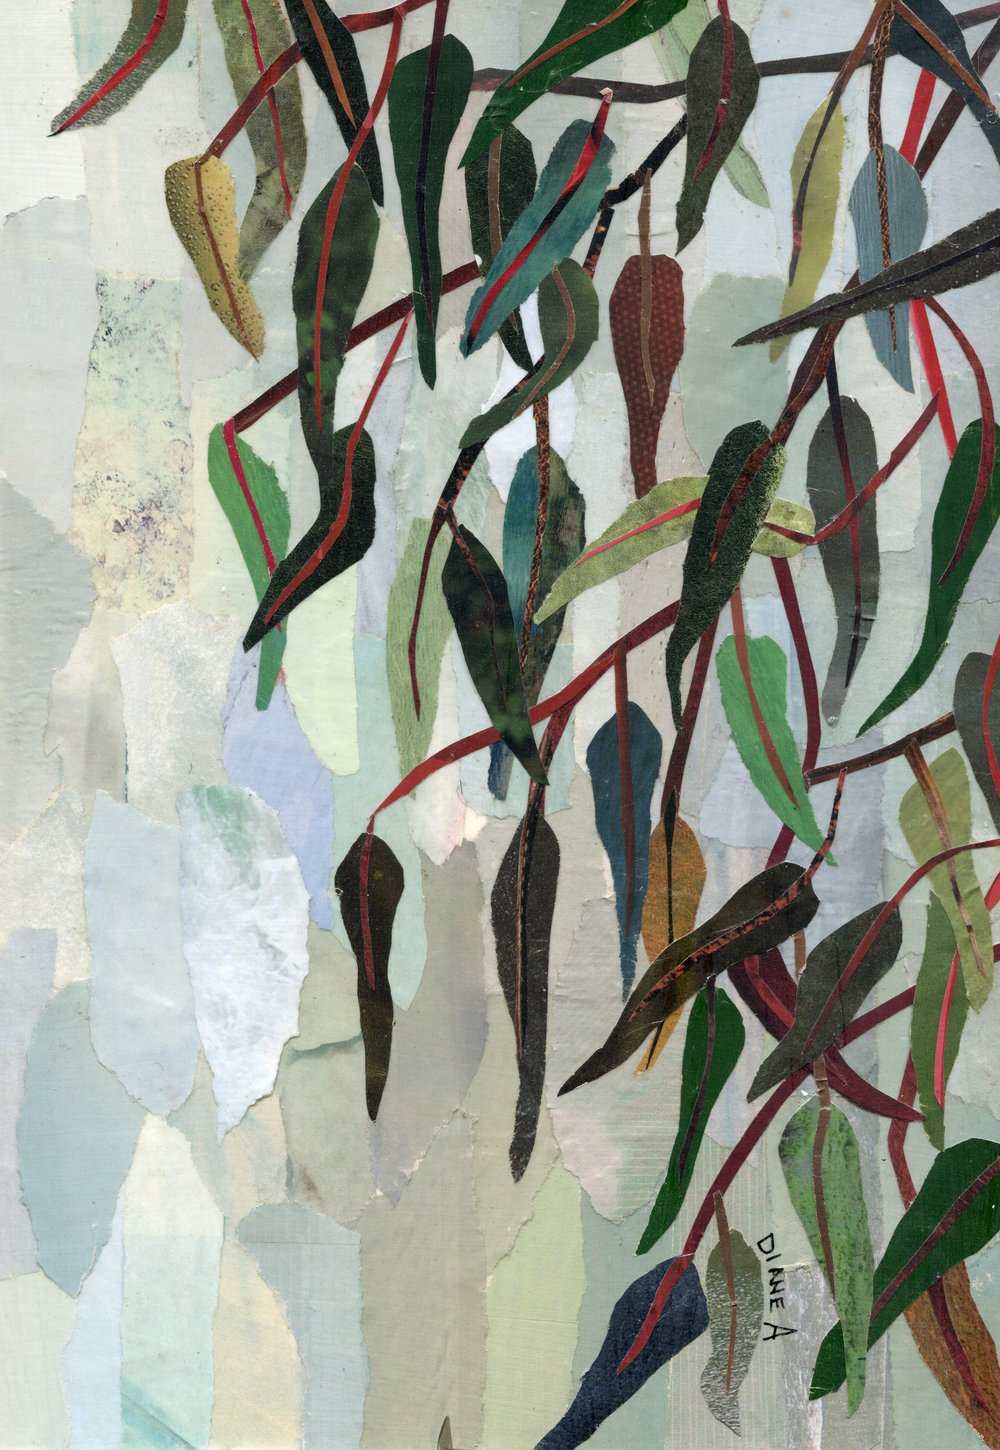 31A  Diane Aldworth  Leaves  paper collage on board